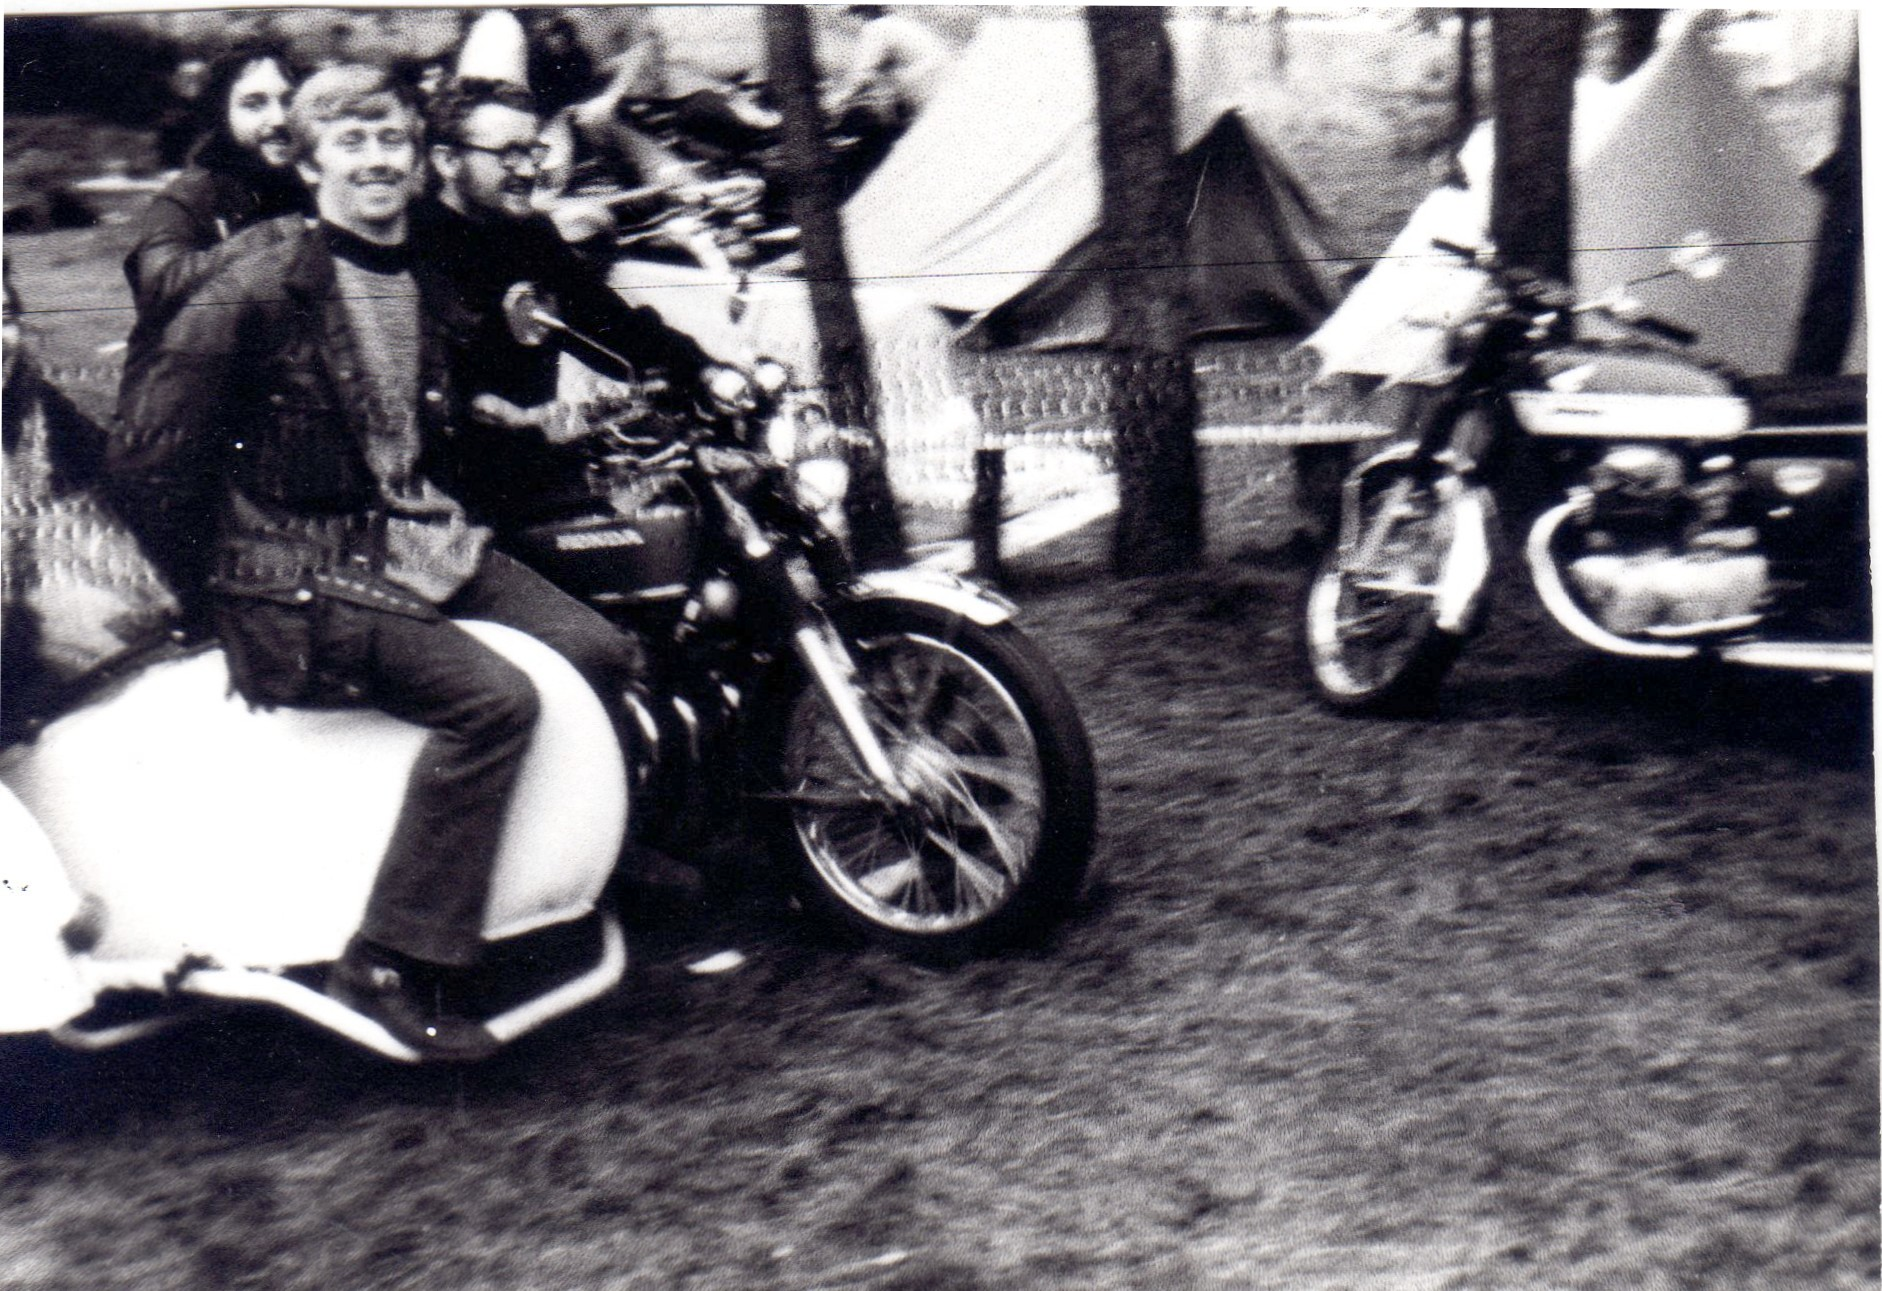 1971 Lions Rally Zolder Honda CB750 side car pepette MC Liberty 01.jpg